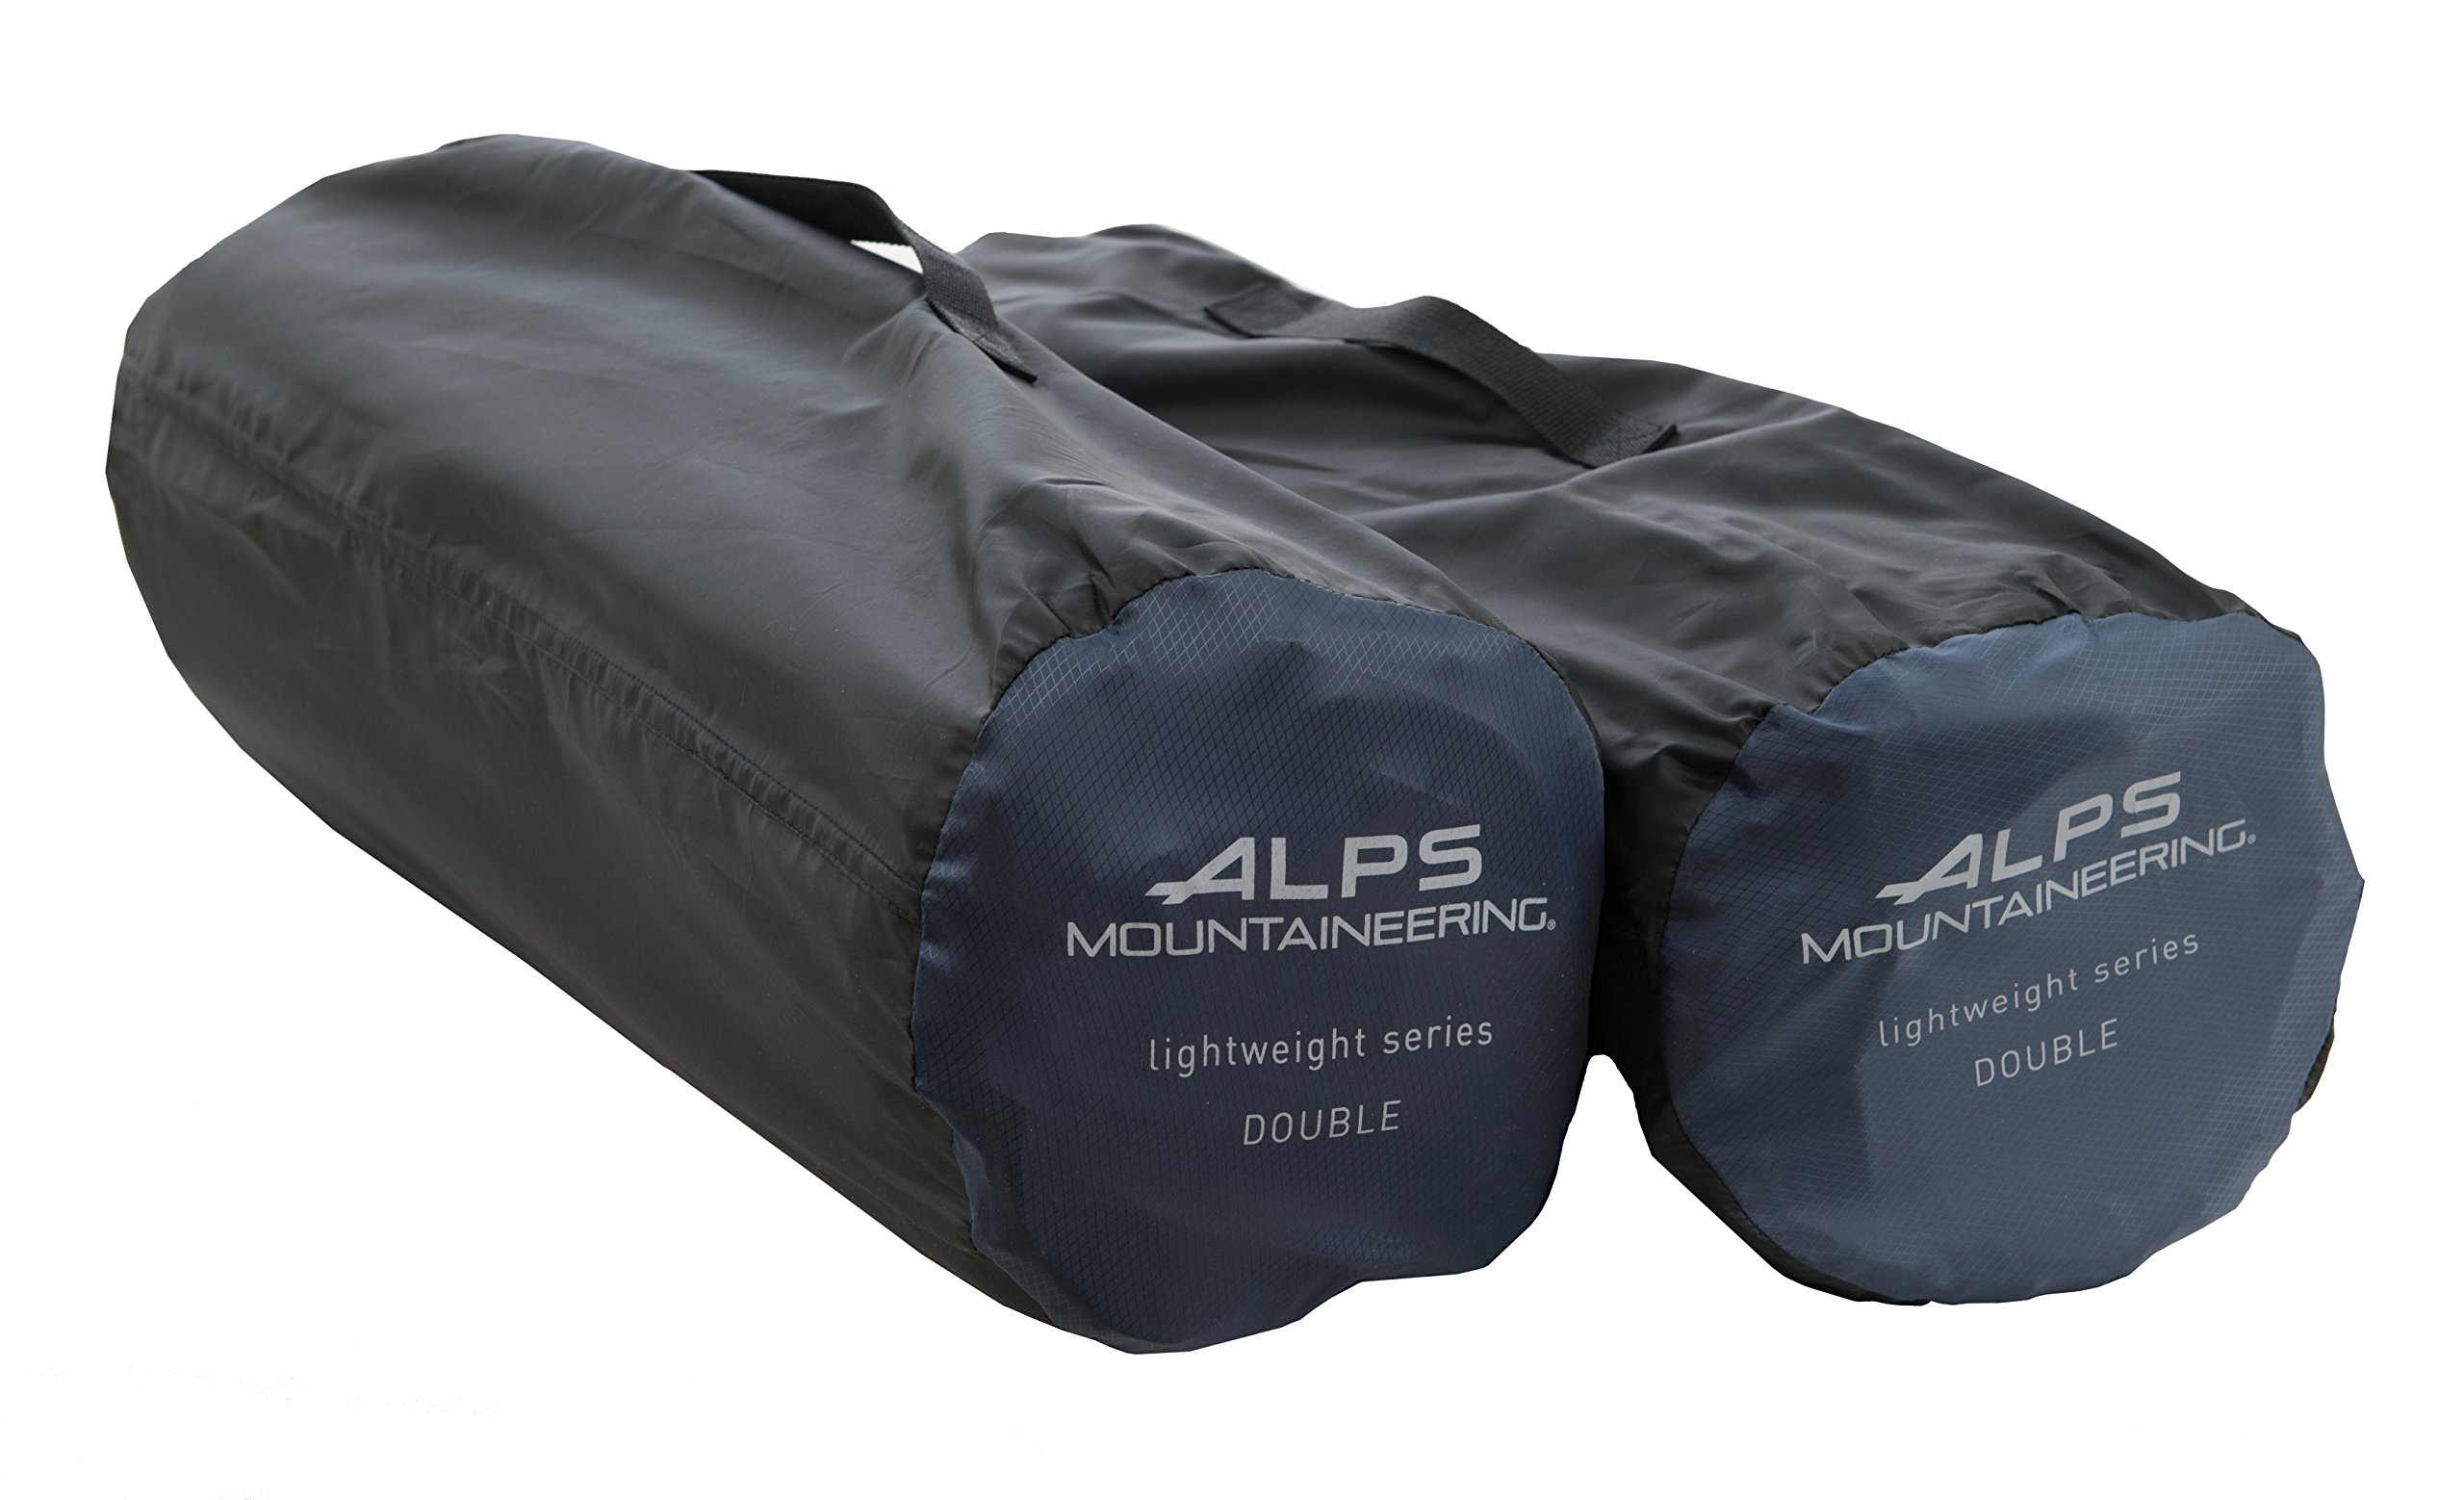 ALPS Mountaineering Lightweight Series Self-Inflating Air Pad-Double by ALPS Mountaineering (Image #7)